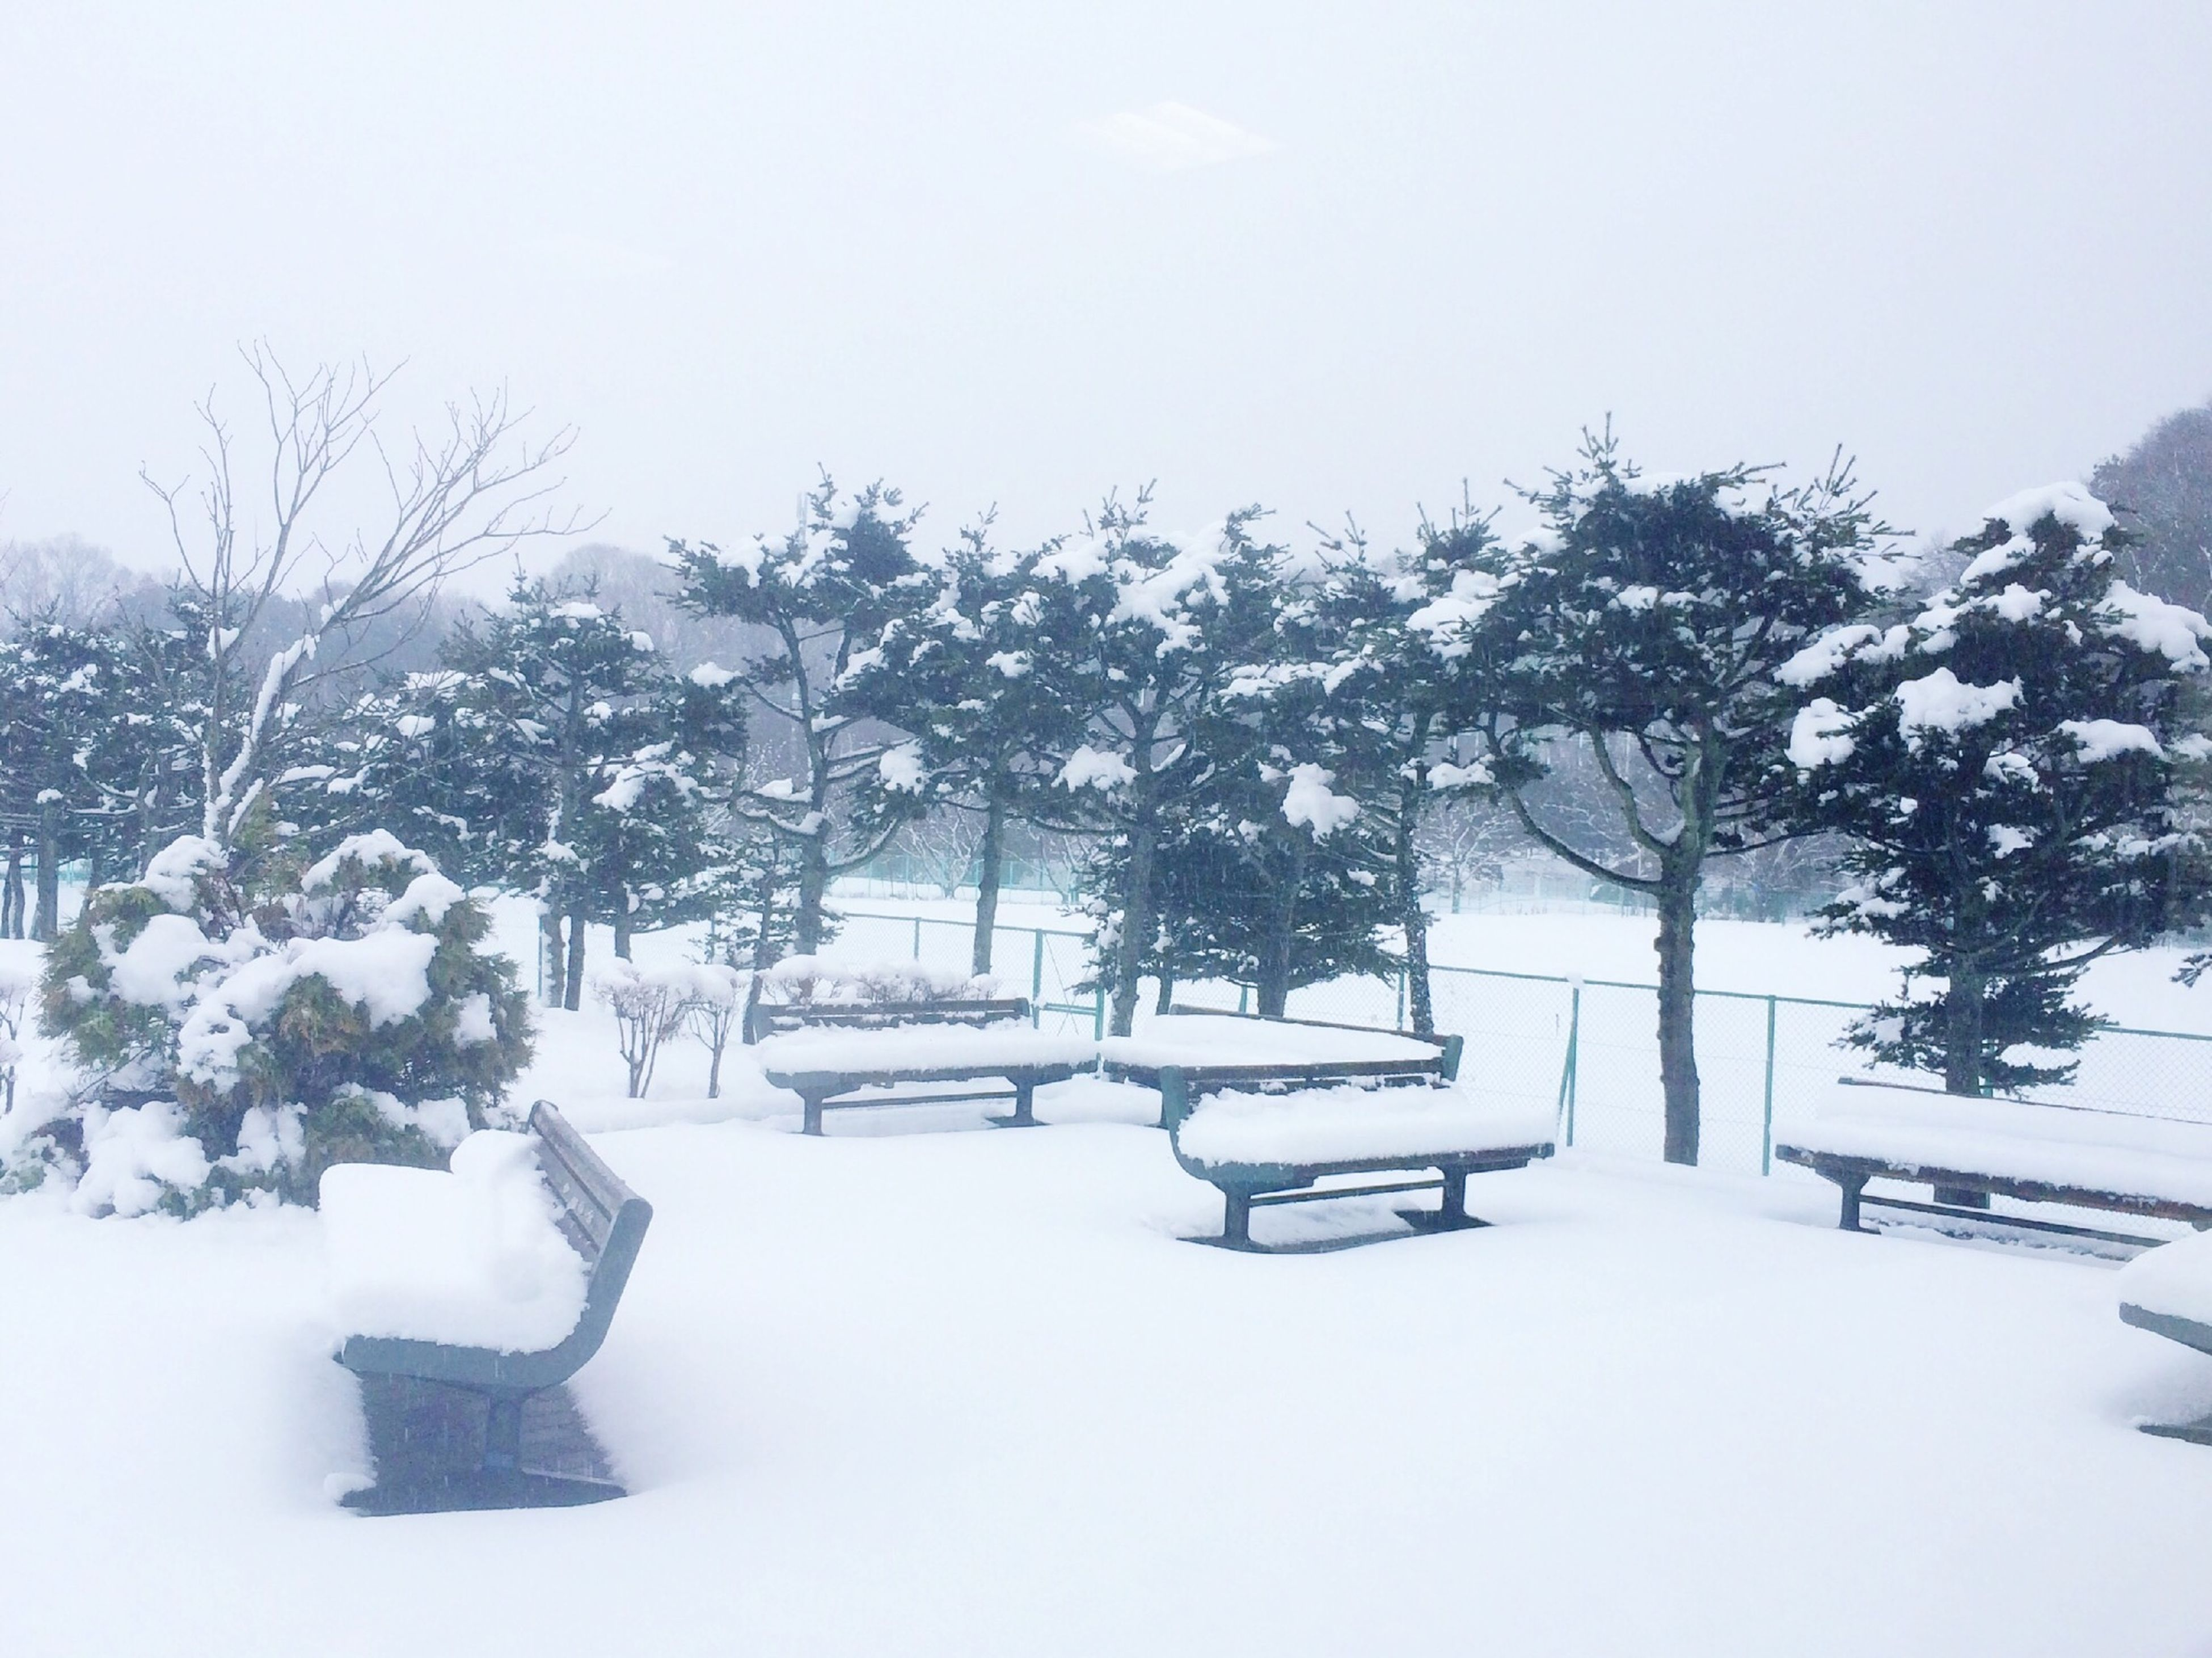 snow, winter, cold temperature, season, weather, tree, covering, tranquility, tranquil scene, nature, clear sky, white color, landscape, covered, field, frozen, beauty in nature, scenics, snow covered, day